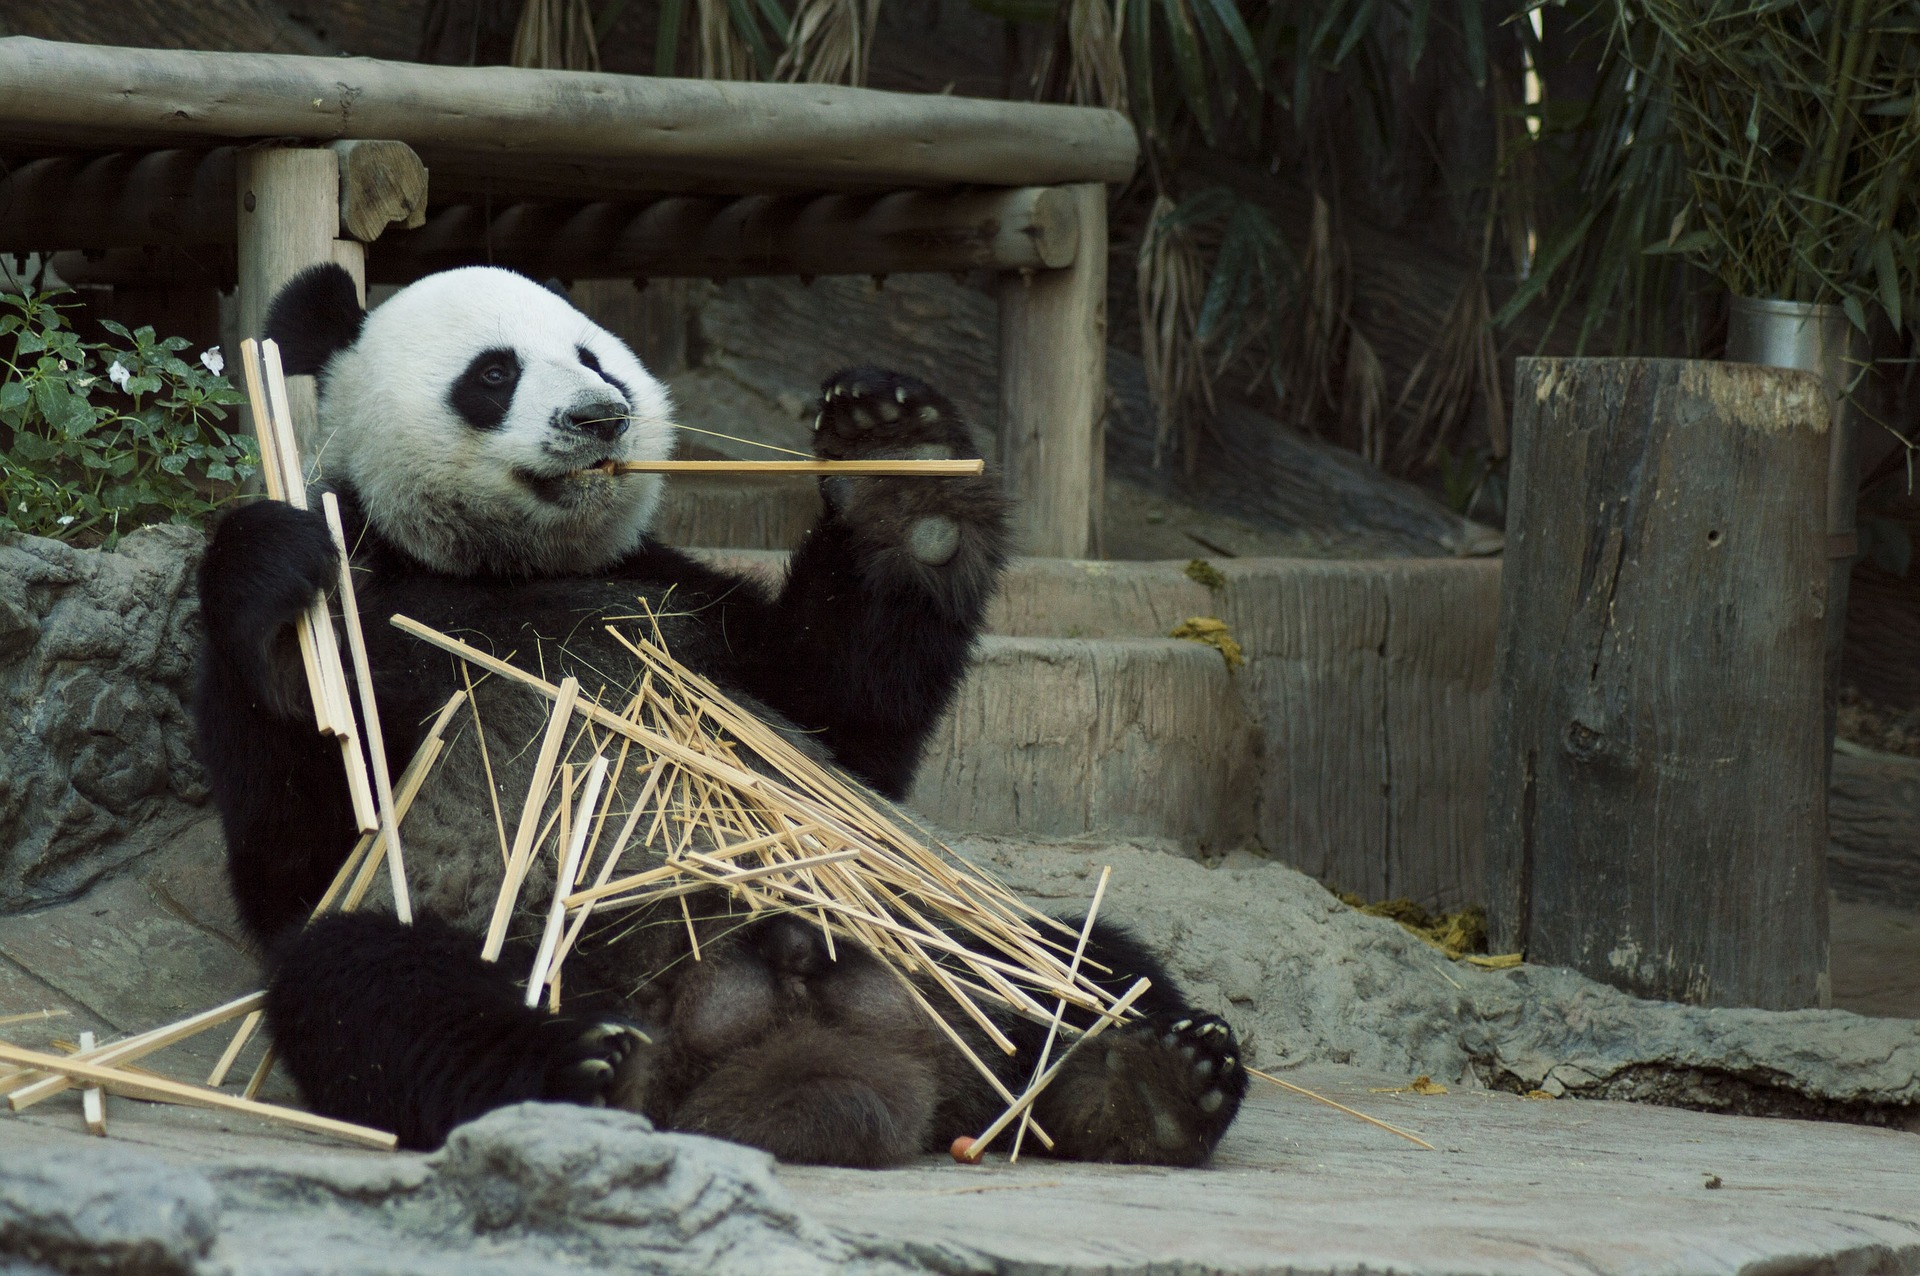 Giant Pandas spend most of their day chewing bamboo